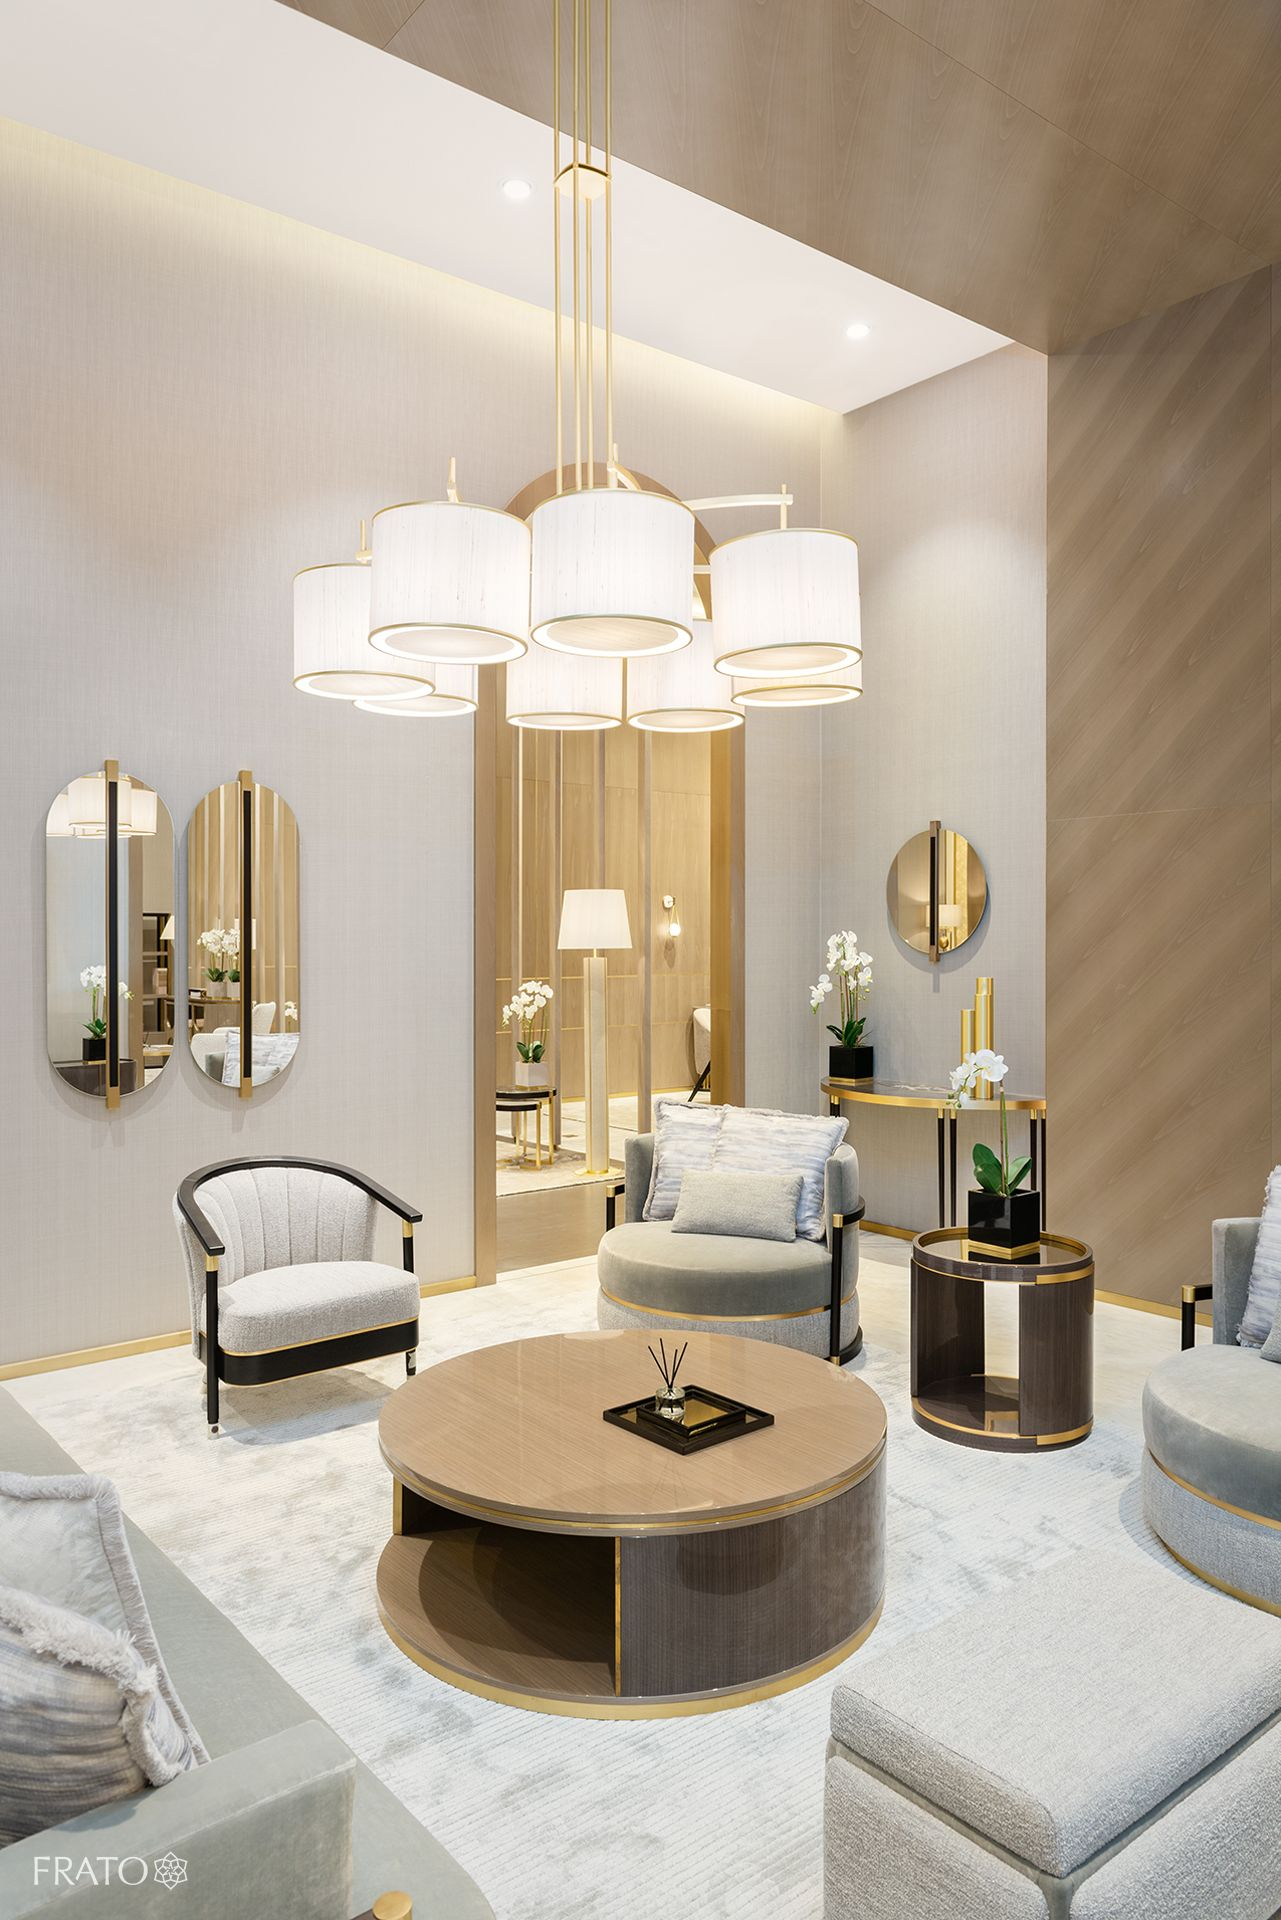 Rooms By Design Furniture Store: Welcome To Frato Interiors NEW FLAGSHIP STORE At The Dubai